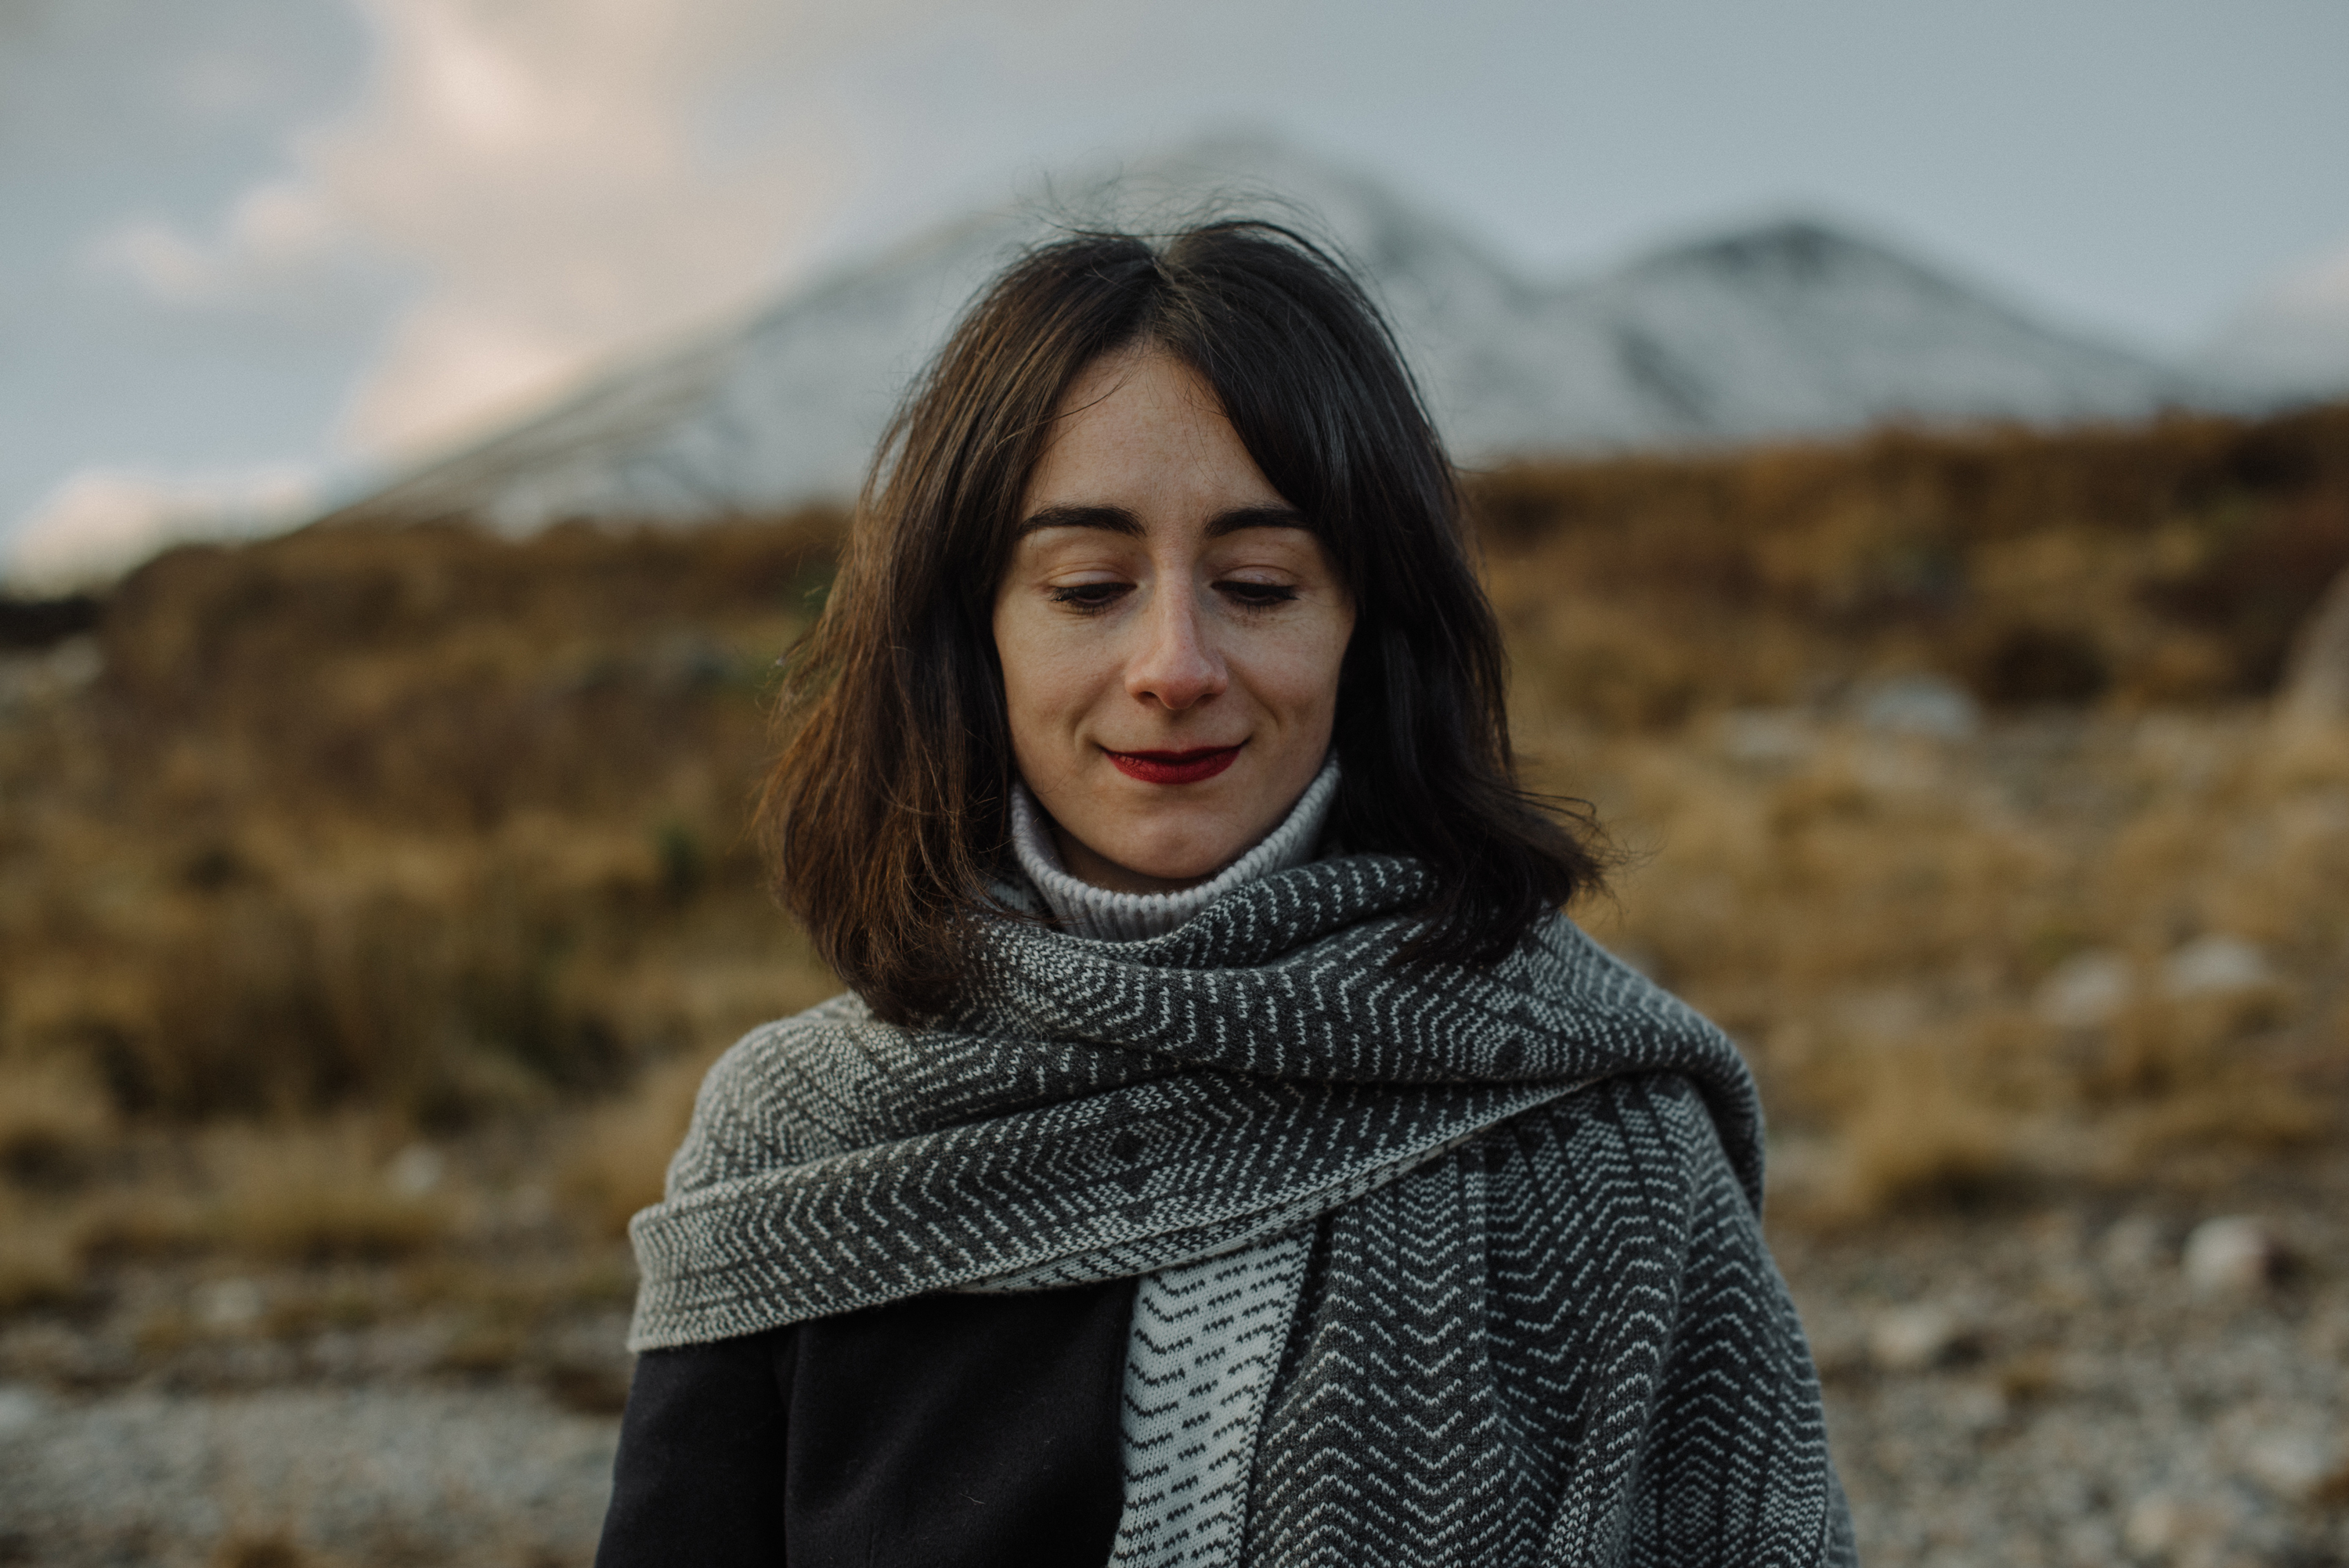 Shawl by Hilary Grant / Photograph by Steven Gallagher